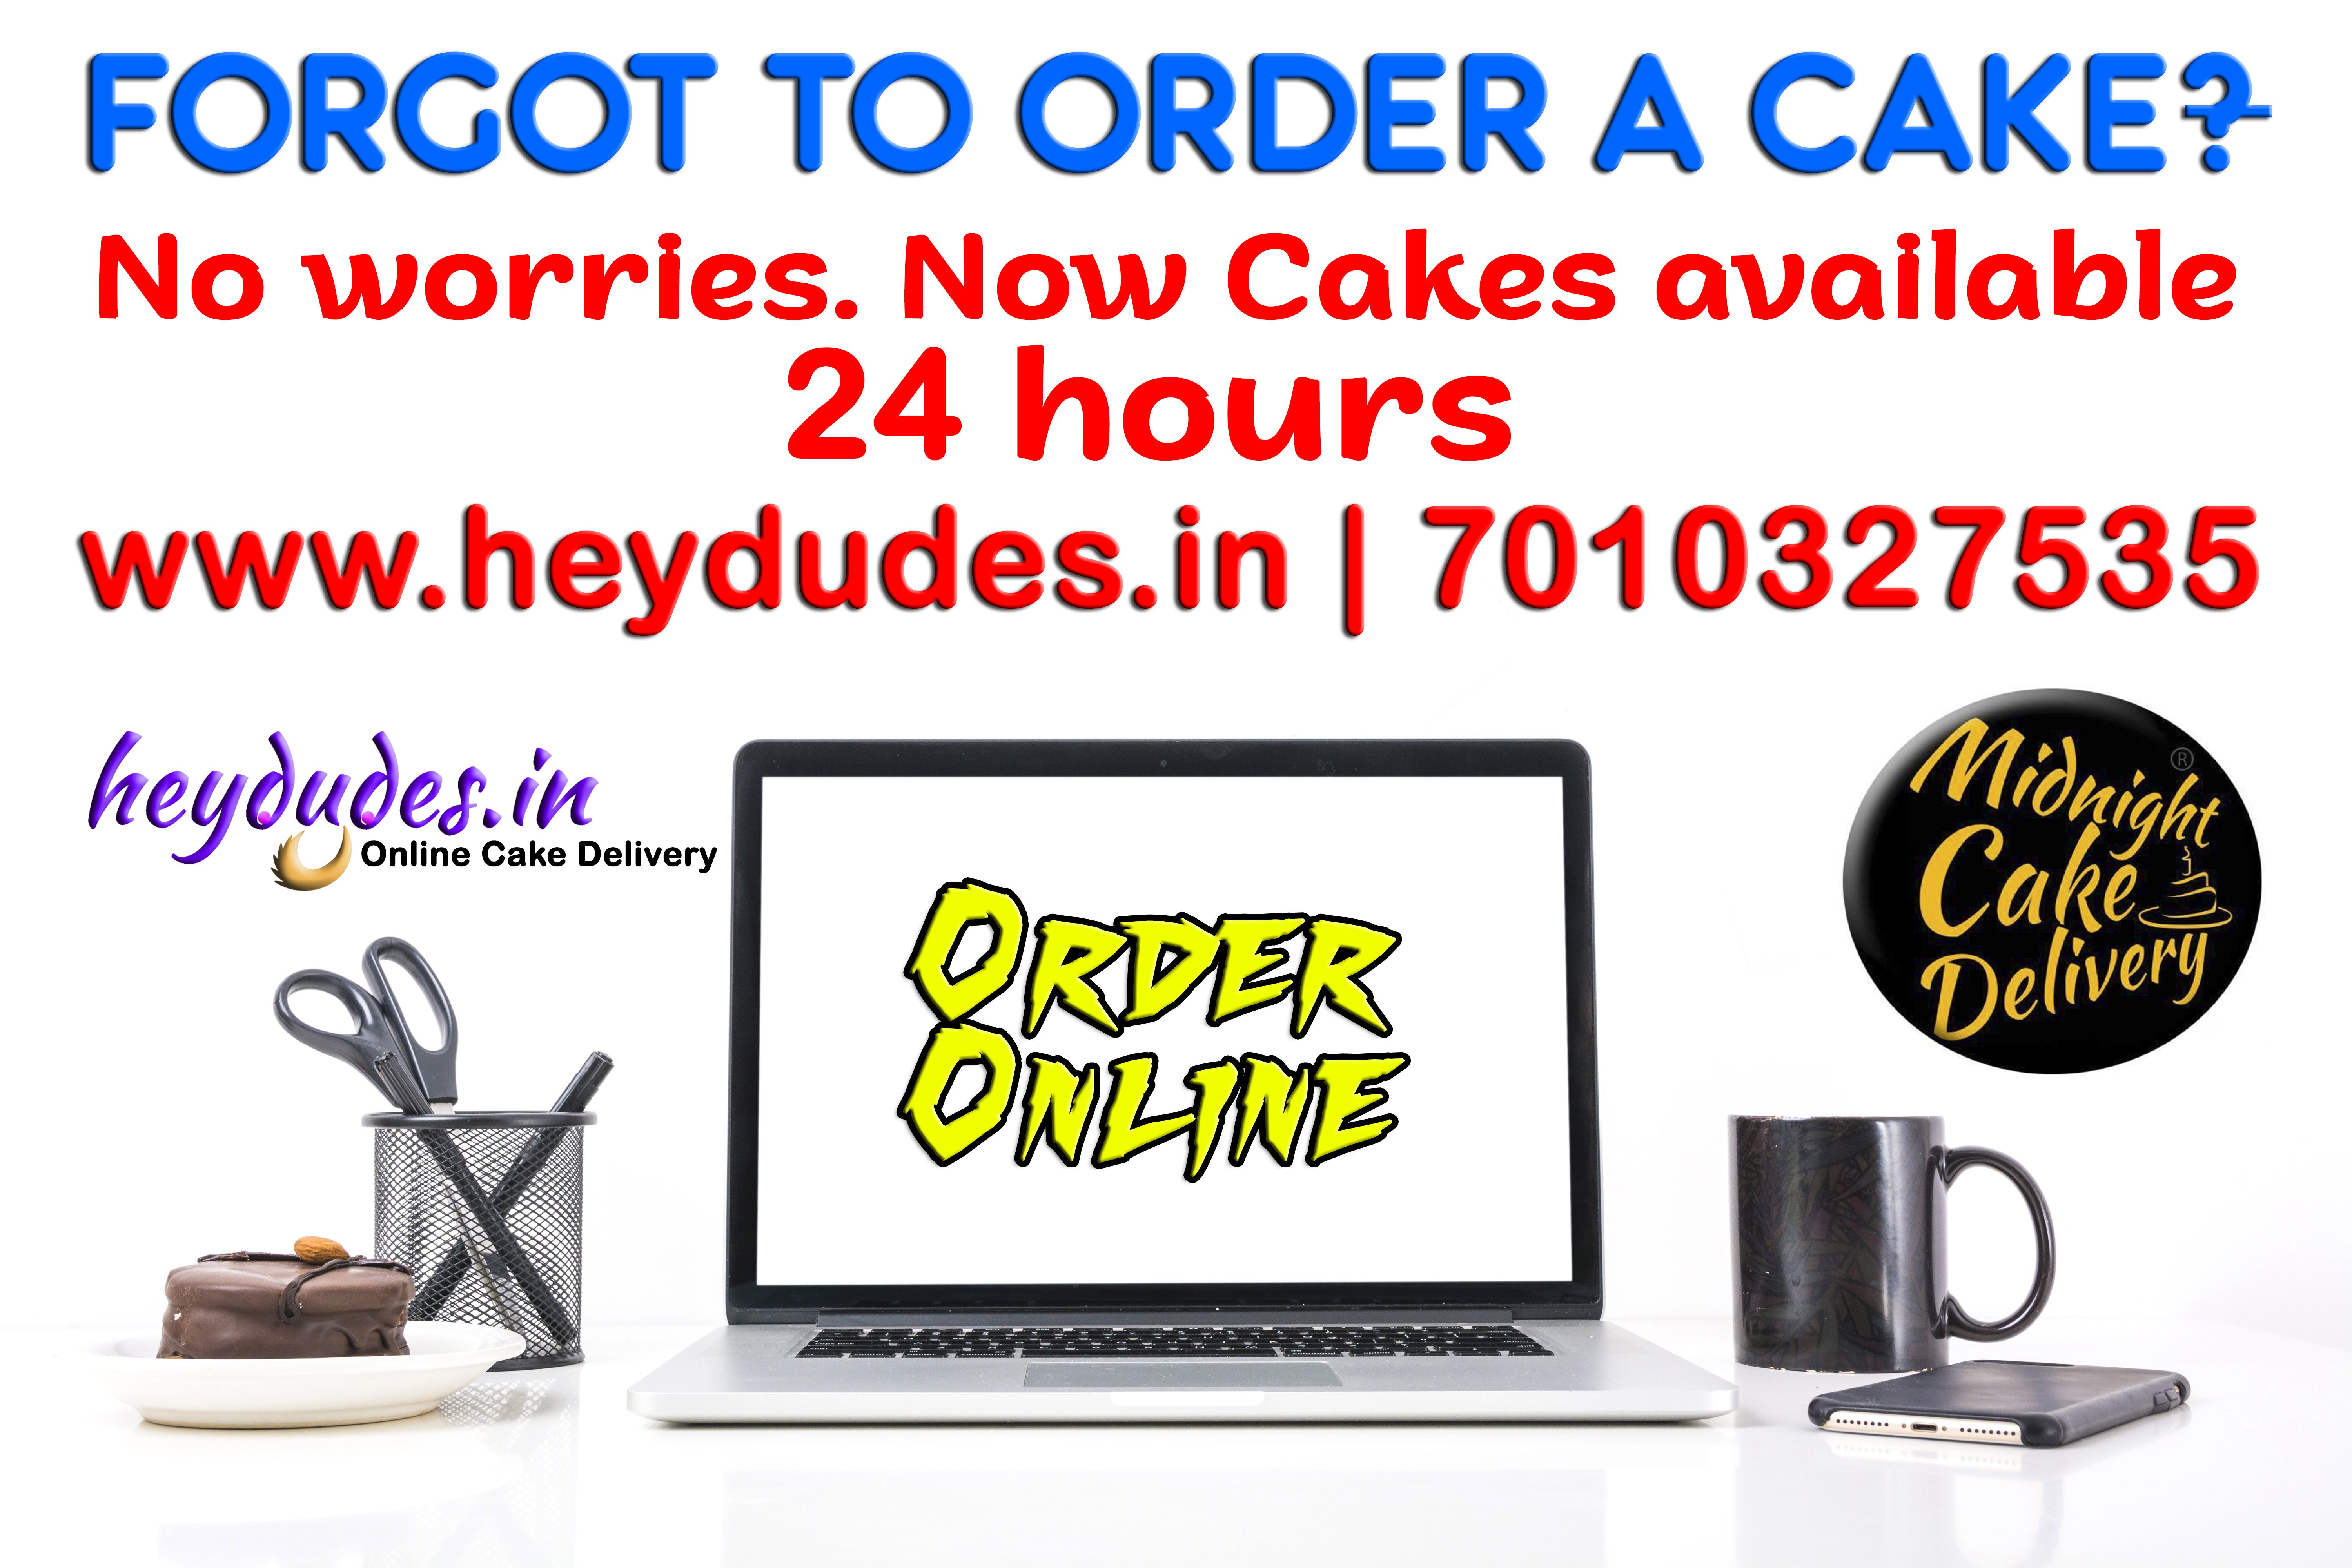 Midnight cake delivery in chennai Best cakes at anytime